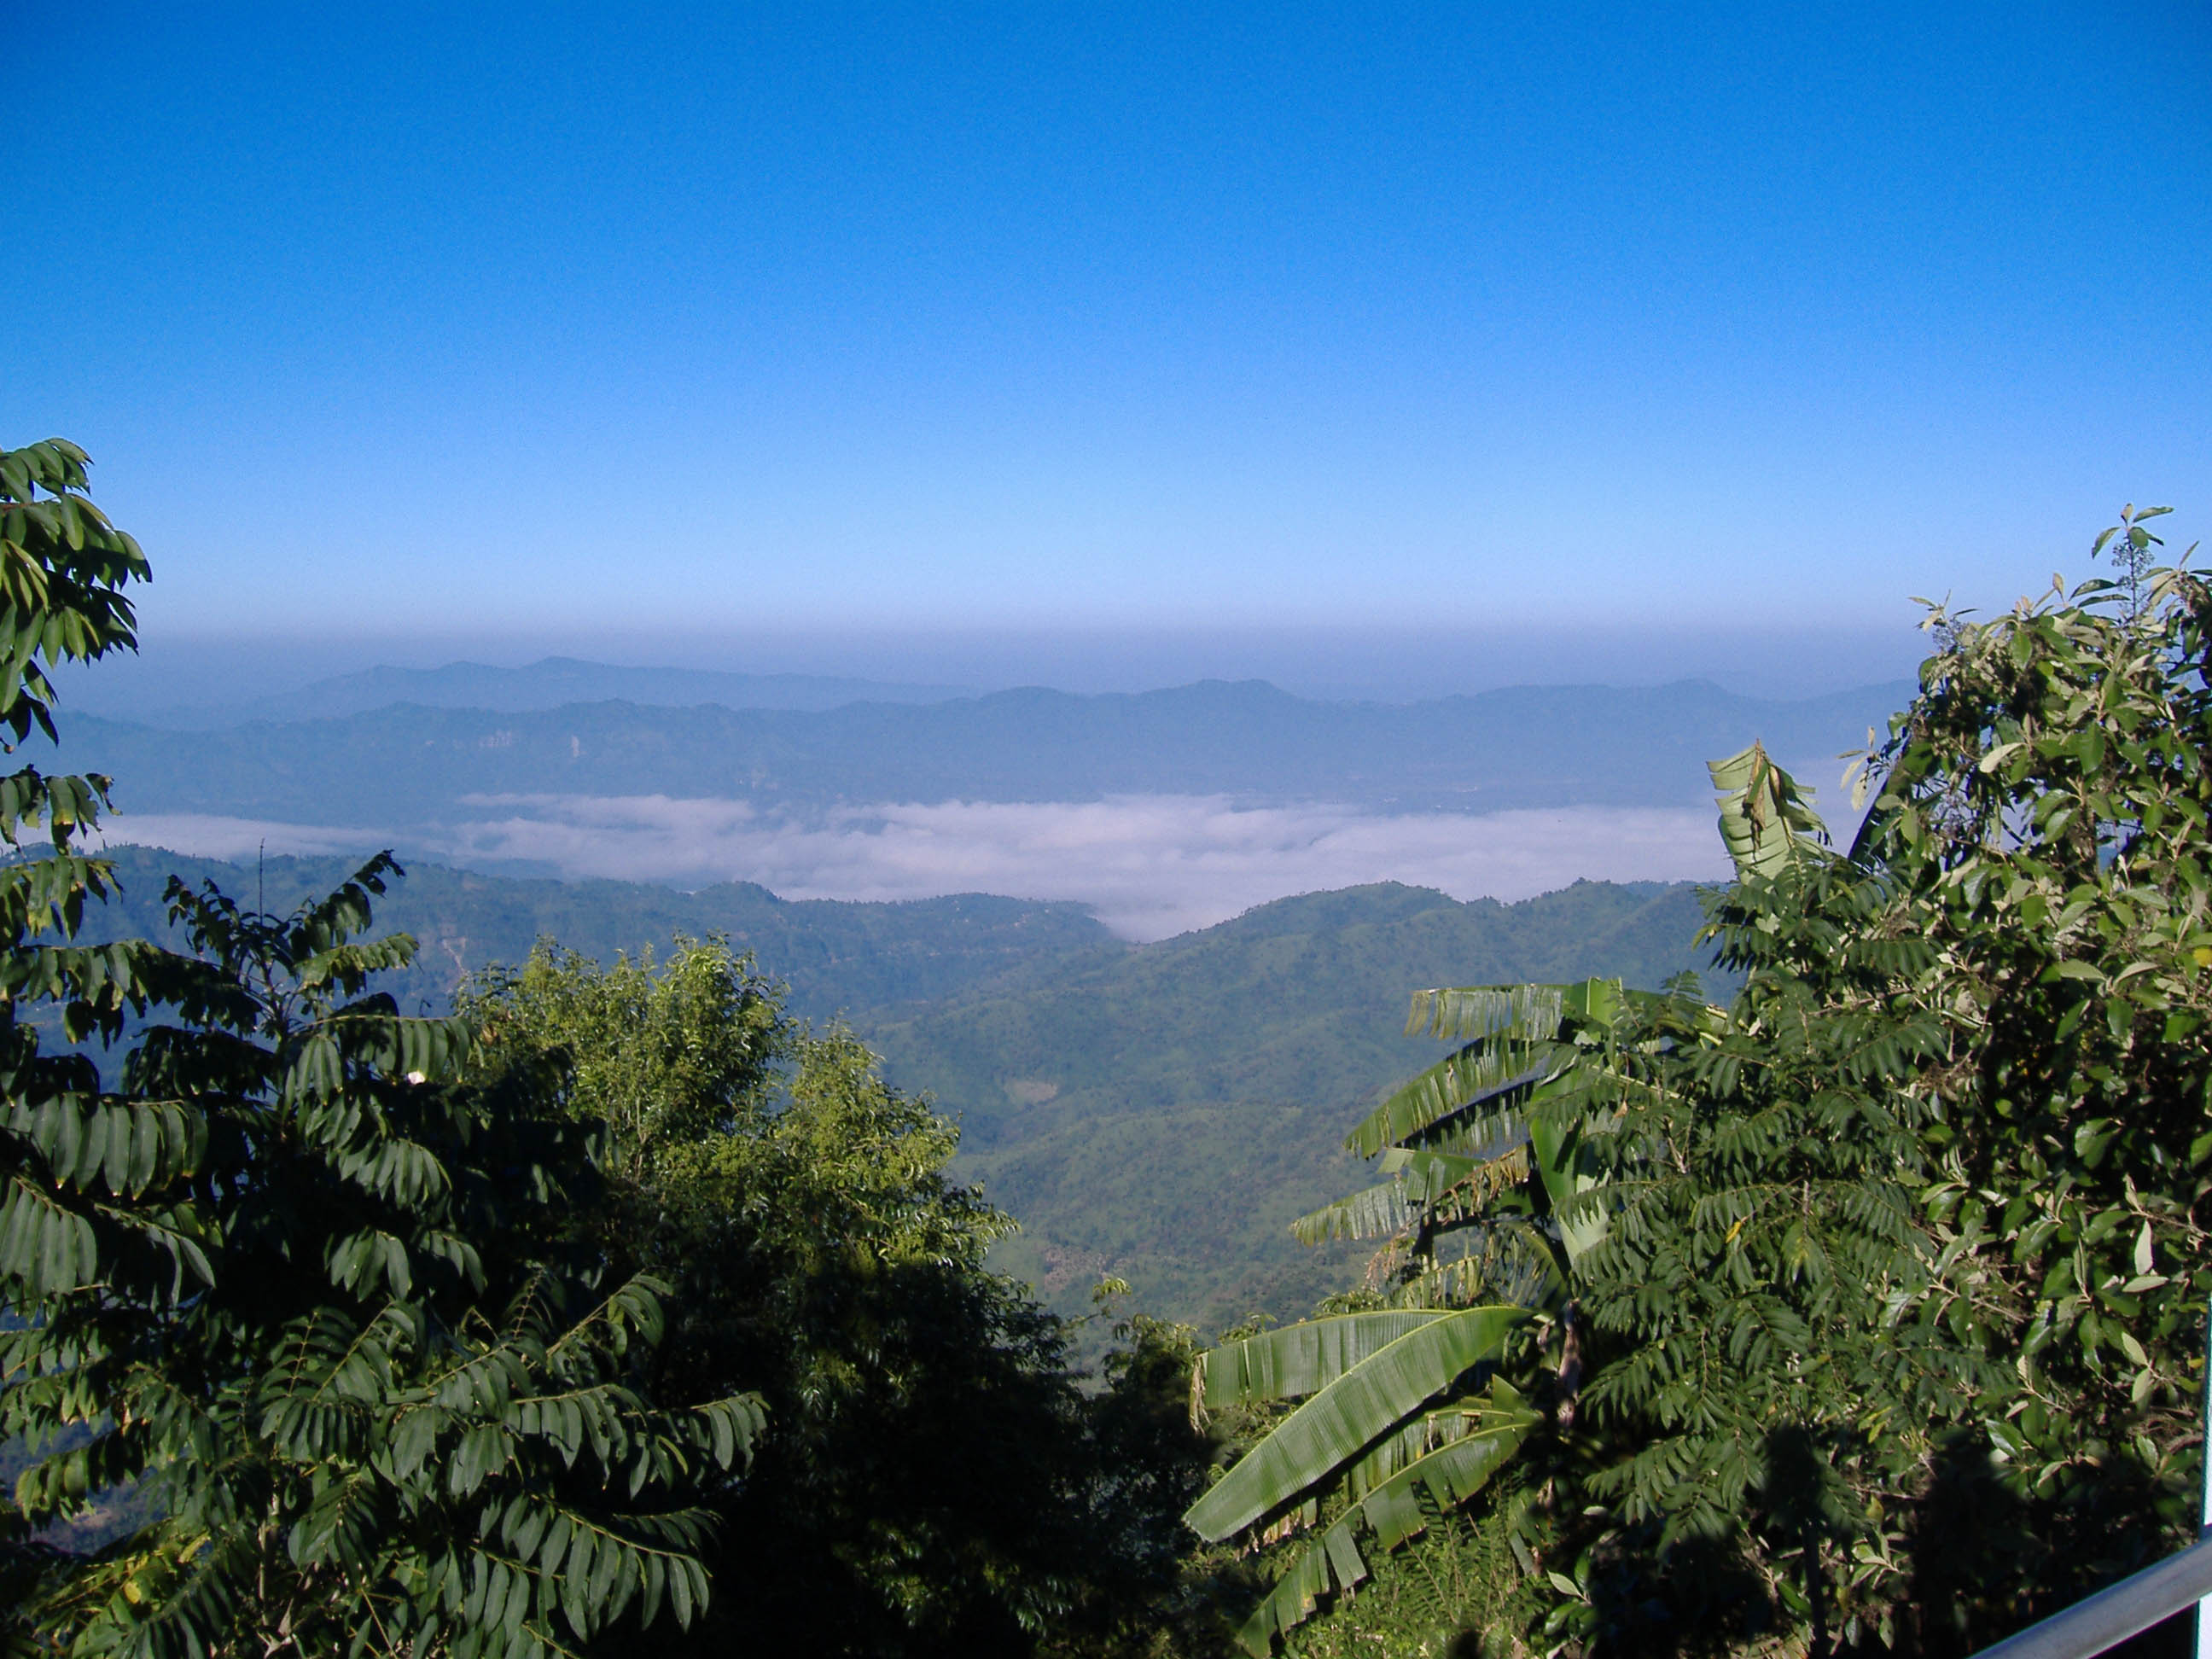 View west from Aizawl: Aizawl Anticline, Sairang Syncline in cloud, Tuanzawal Anticline